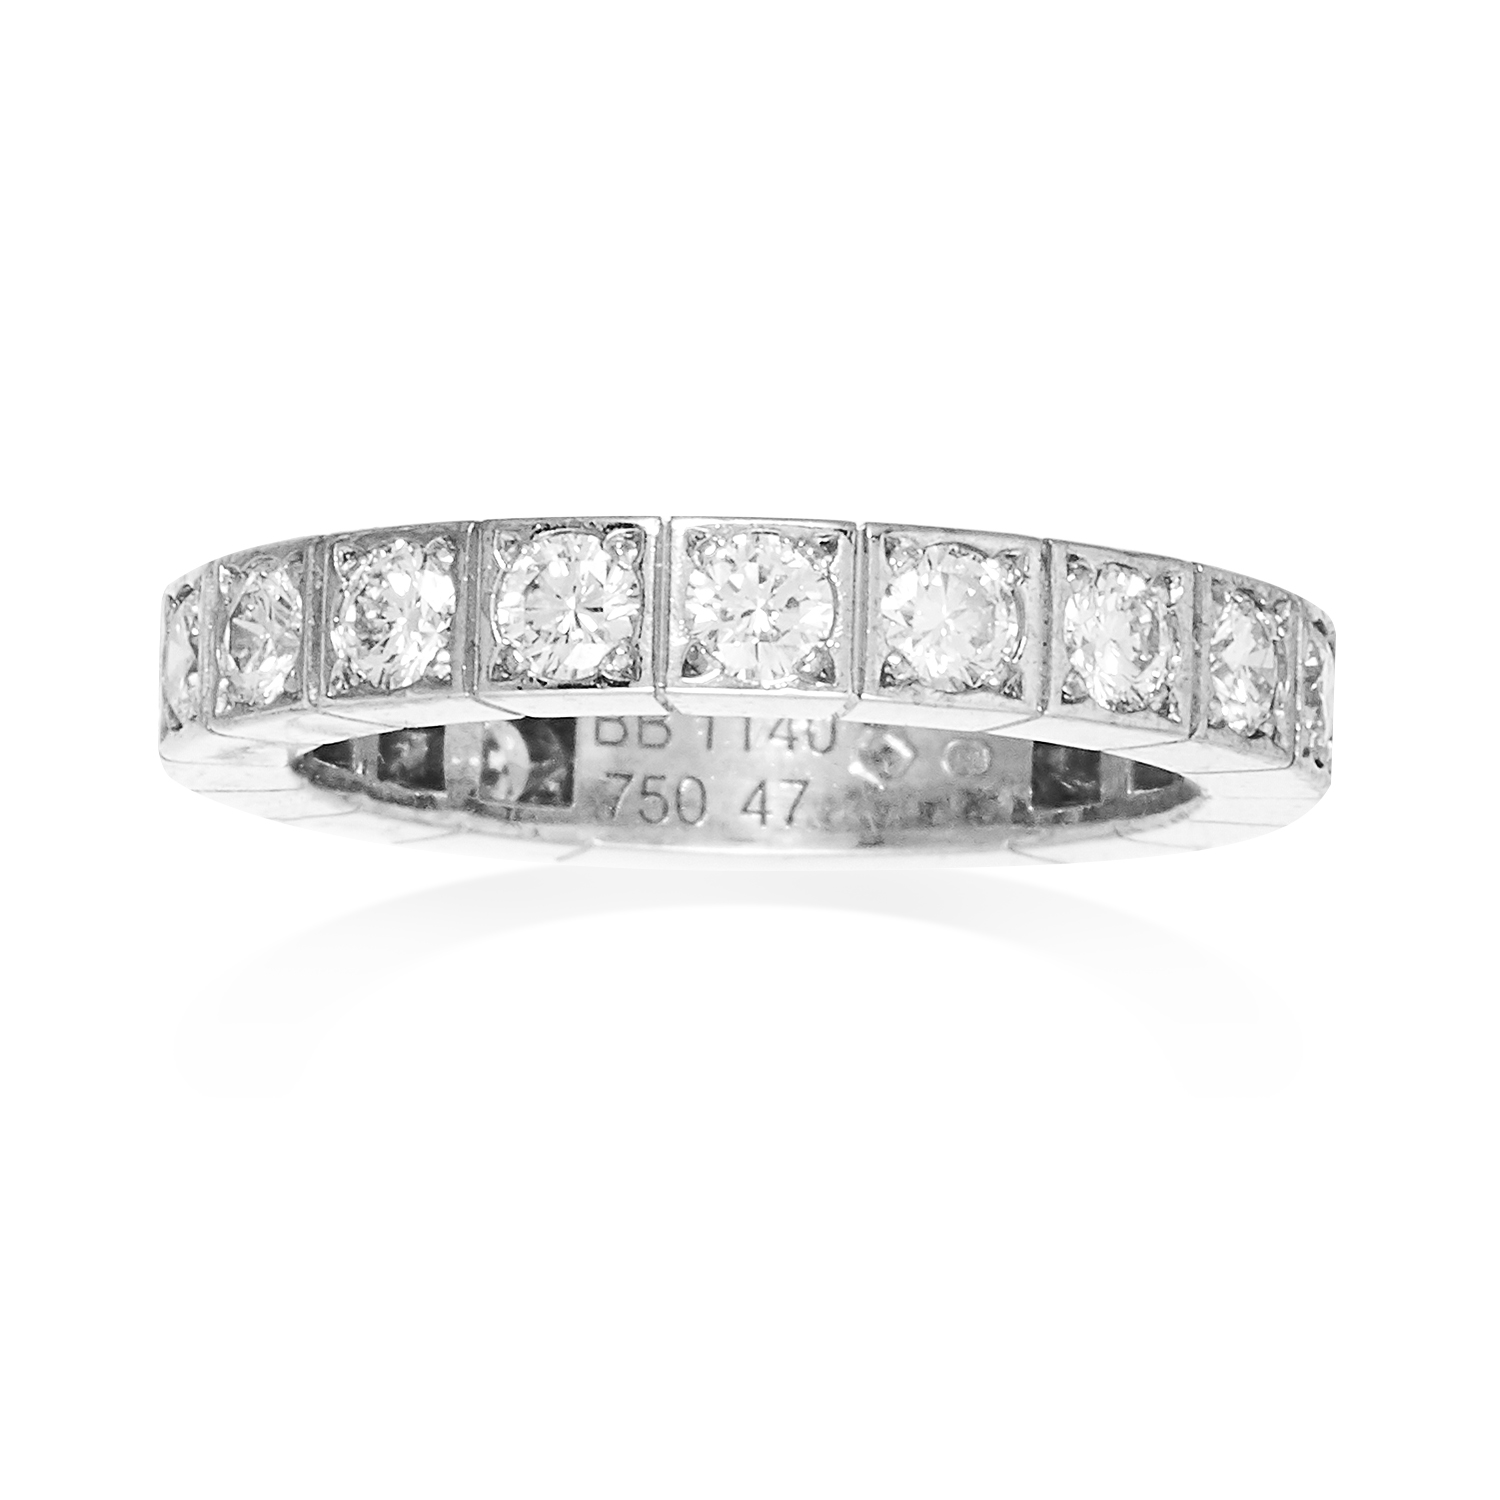 A DIAMOND ETERNITY RING, CARTIER in 18ct white gold, set with a single row of diamonds totalling 1.0